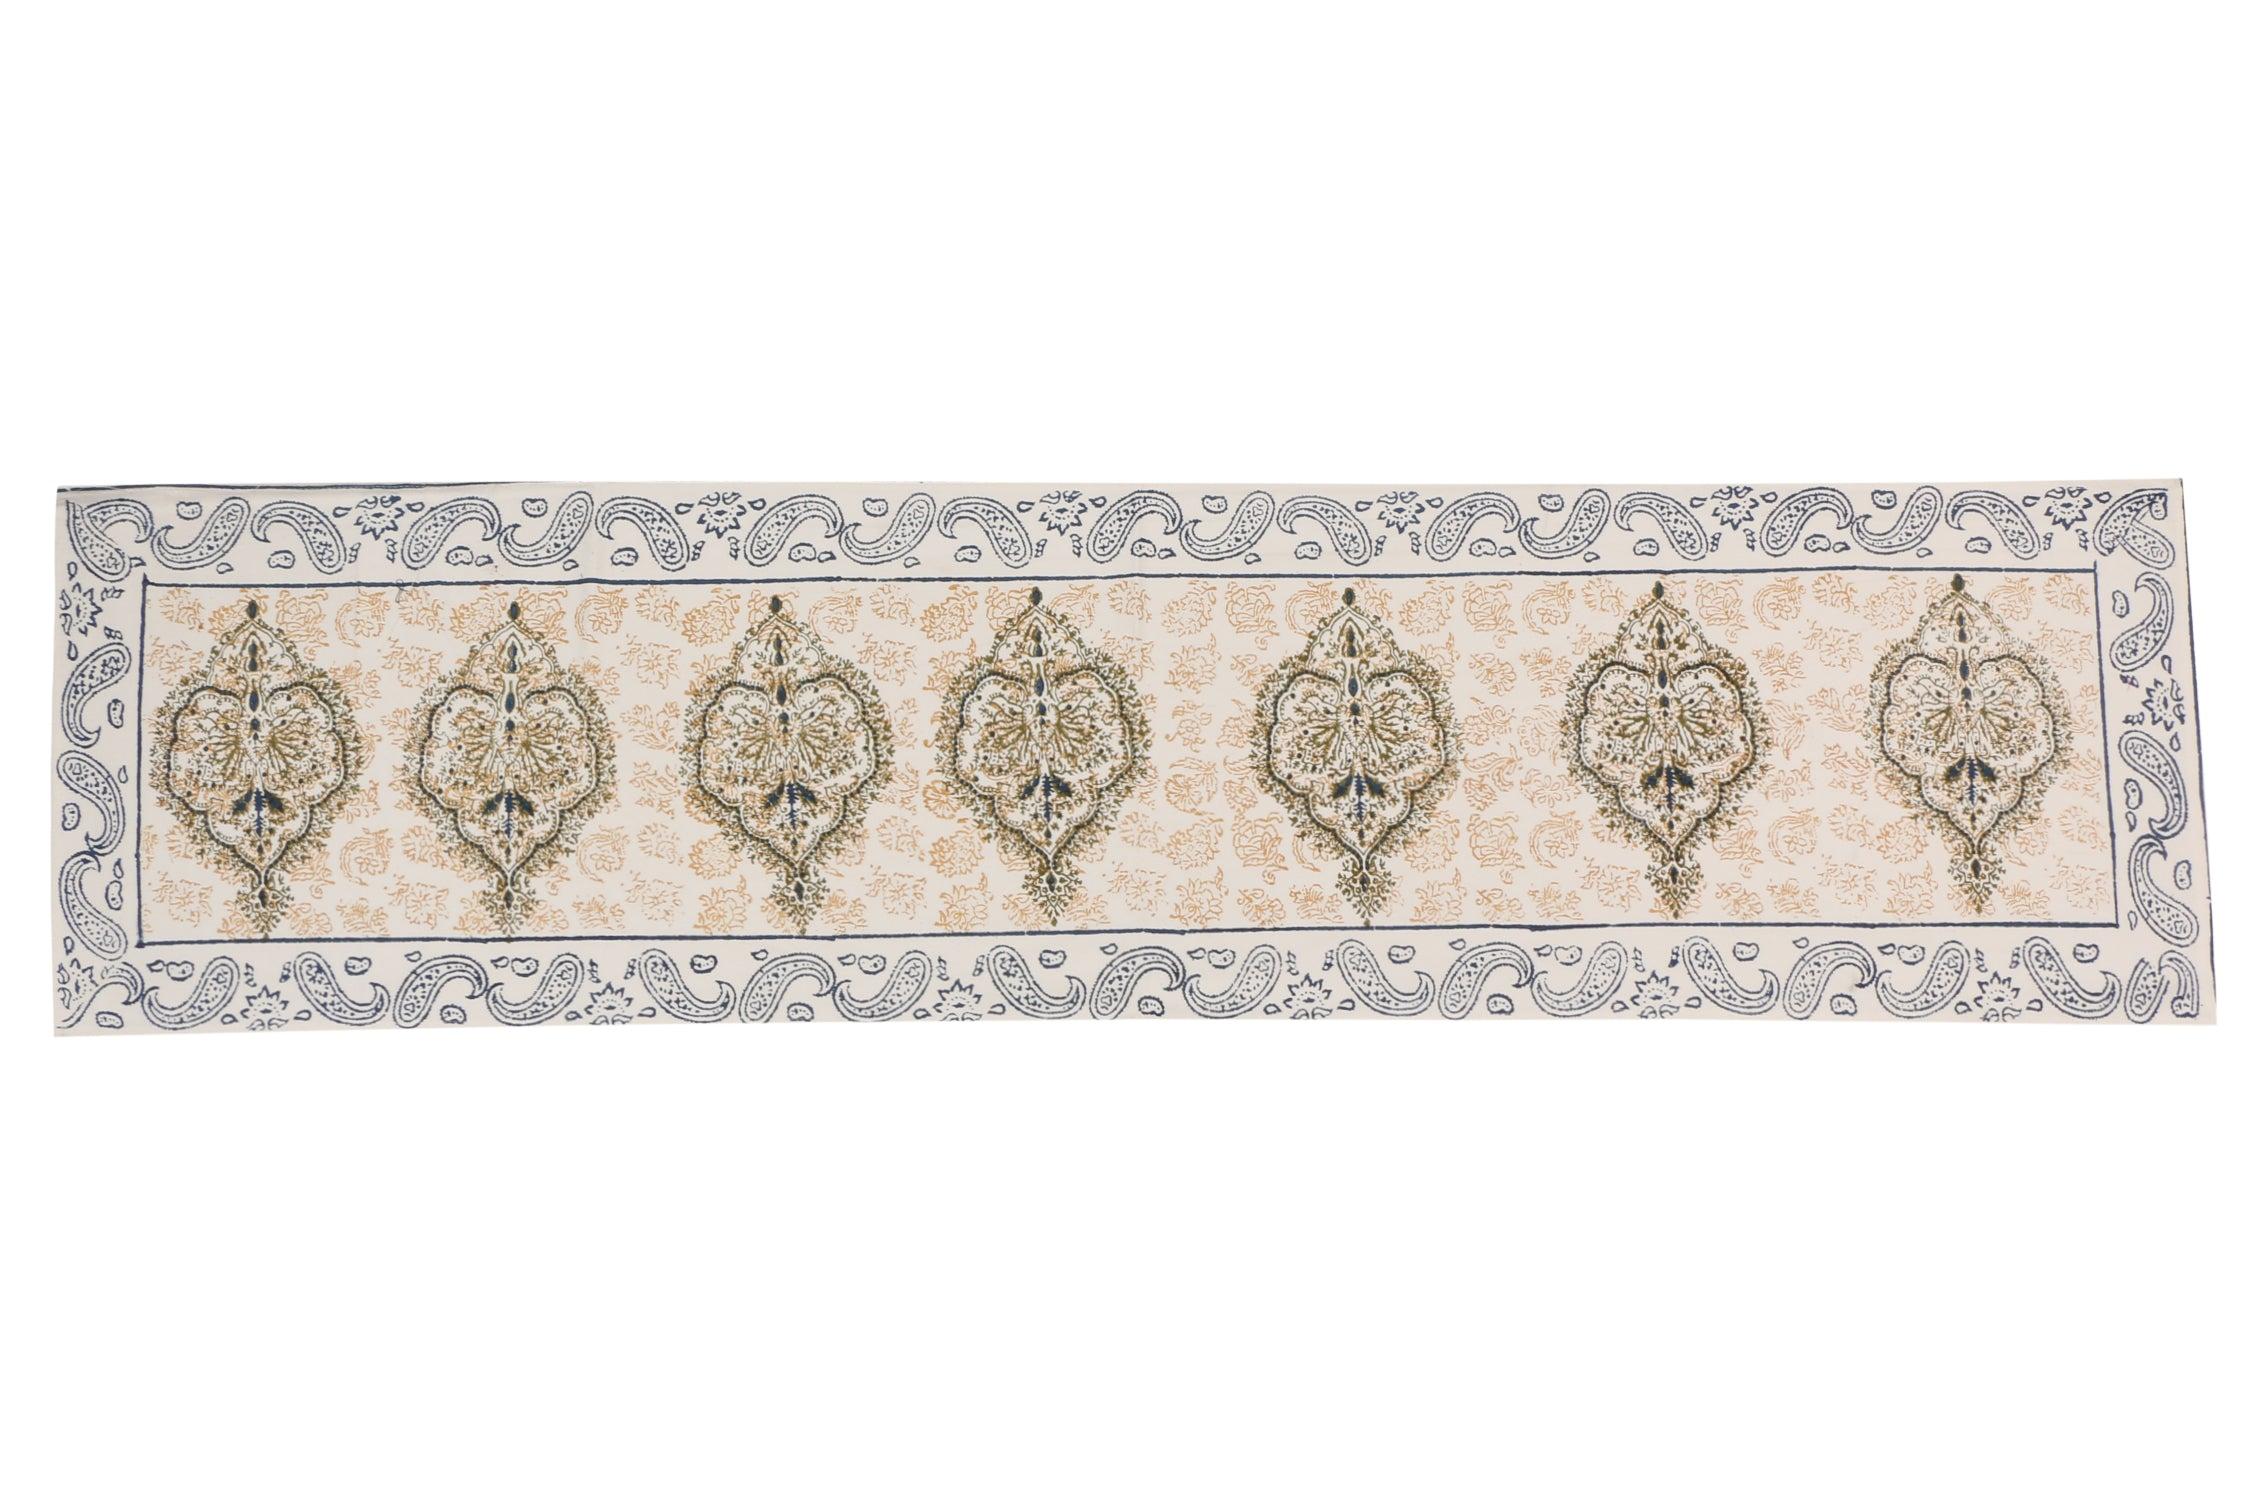 Cotton Floral & Paisley Table Runner - 13 x 54 - SNYTRV6